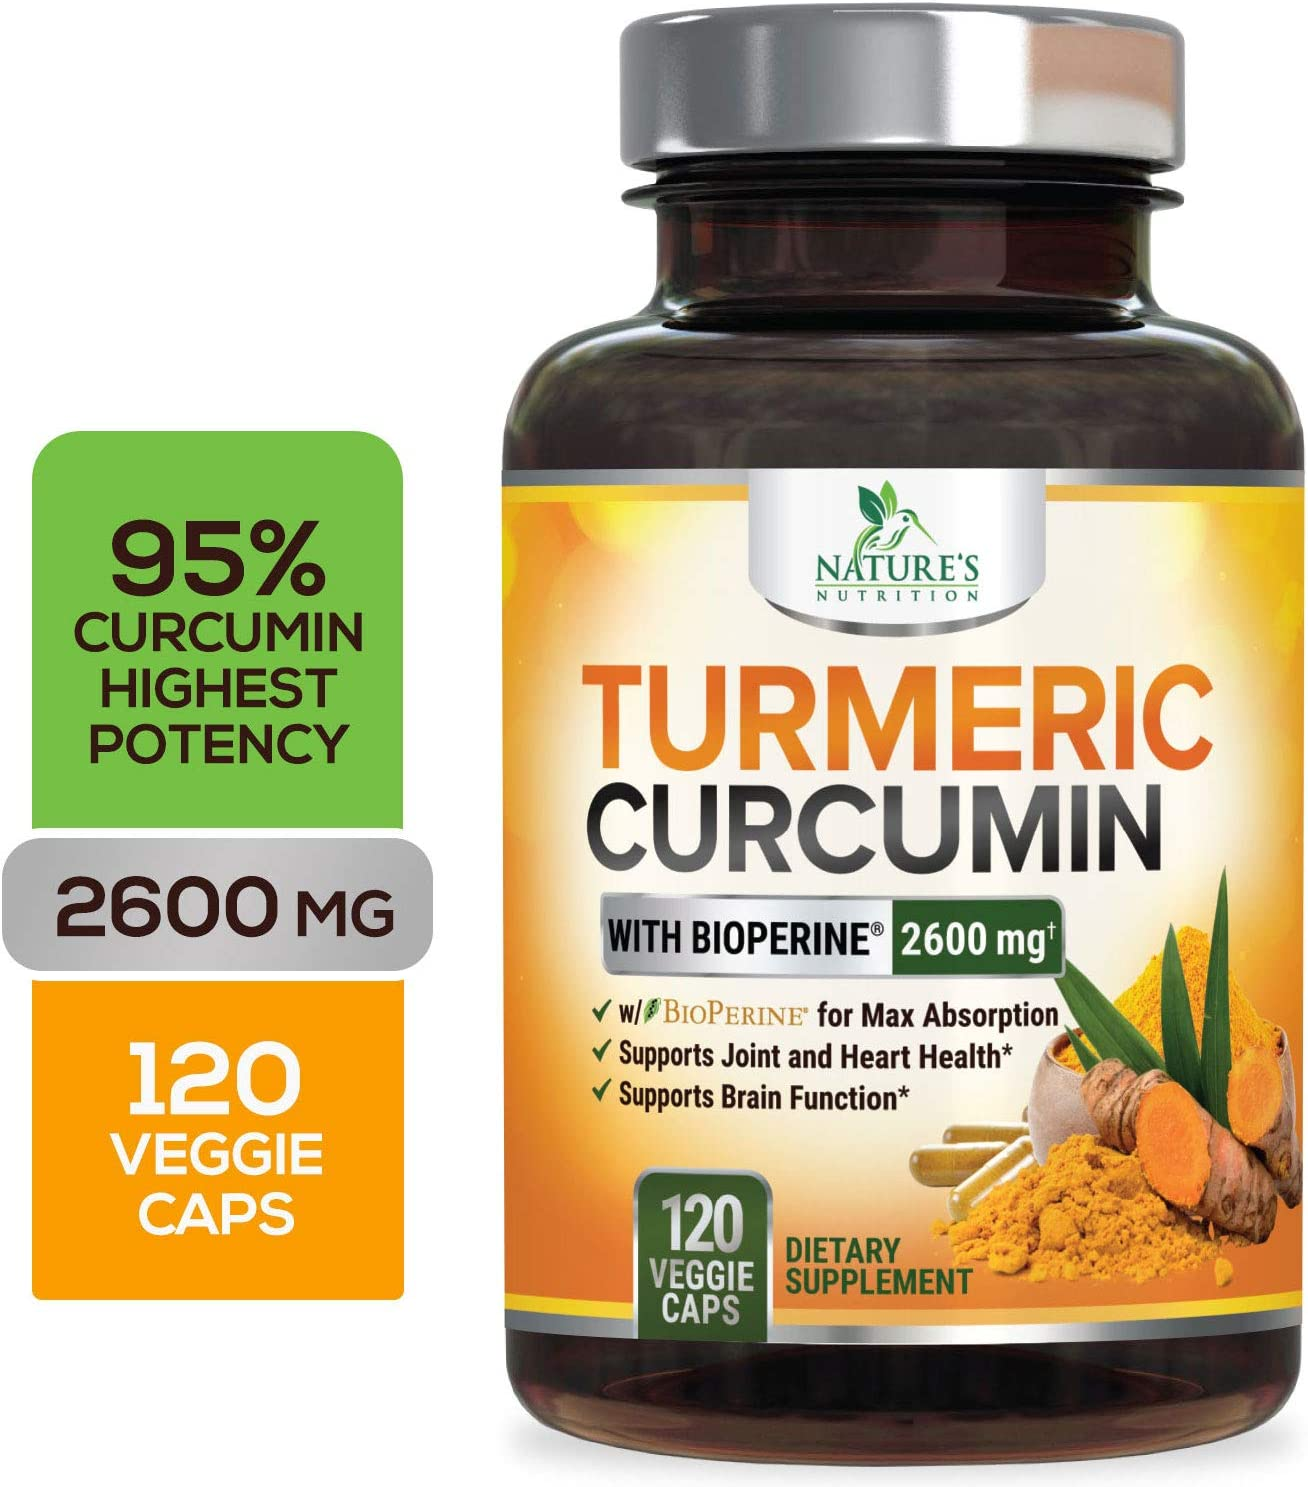 Turmeric Curcumin with Bioperine 95% Curcuminoids 2600mg with Black Pepper for Best Absorption, Made in USA, Best Vegan Joint Support, Turmeric Supplement Pills by Natures Nutrition - 120 Capsules